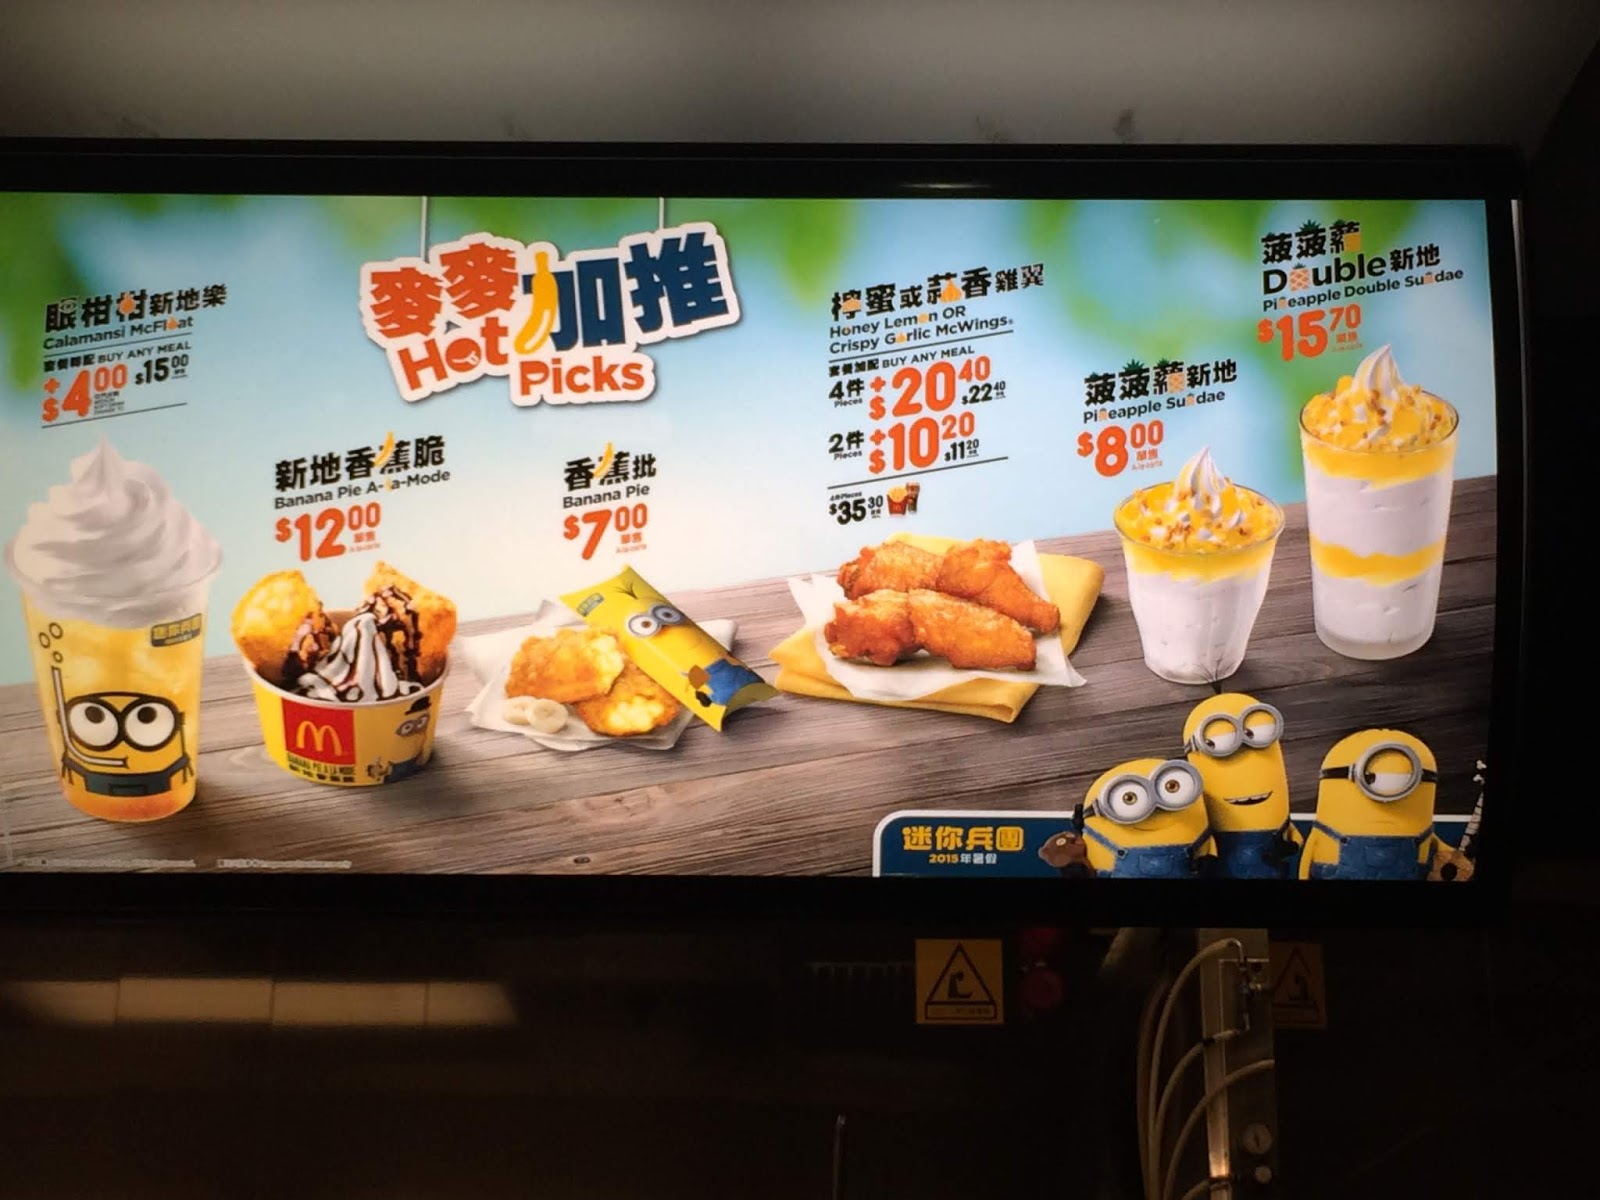 Hong-Kong-McDonalds-menu